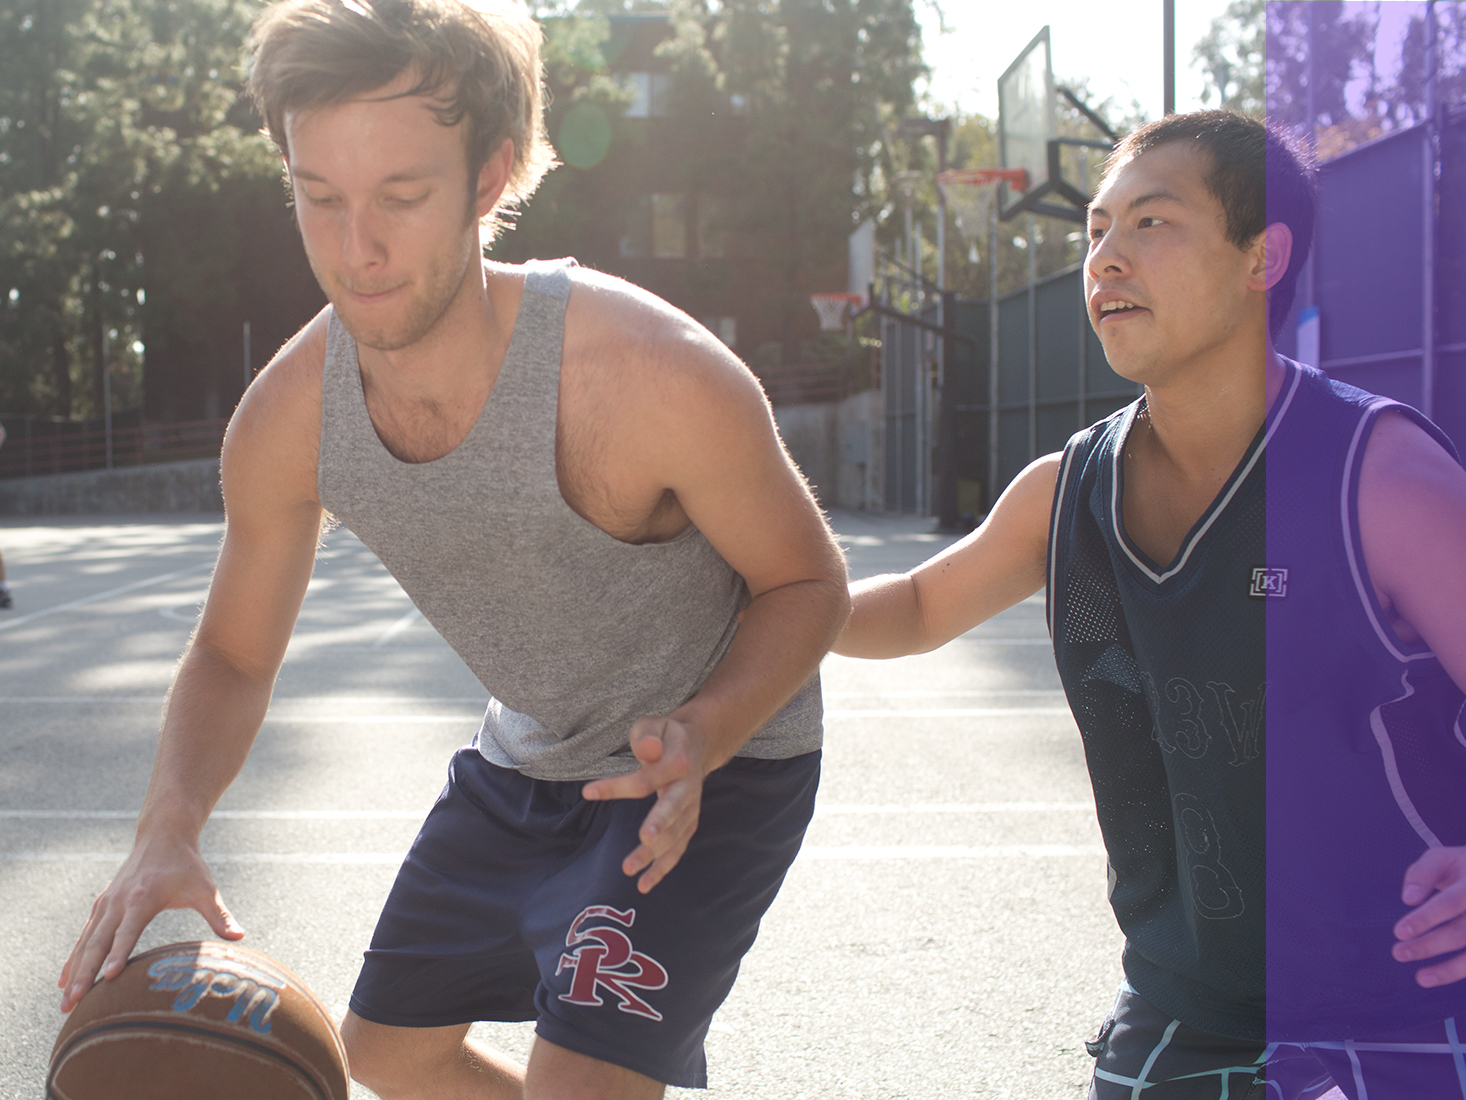 A couple of Bruins play basketball at the Sunset Recreation courts.